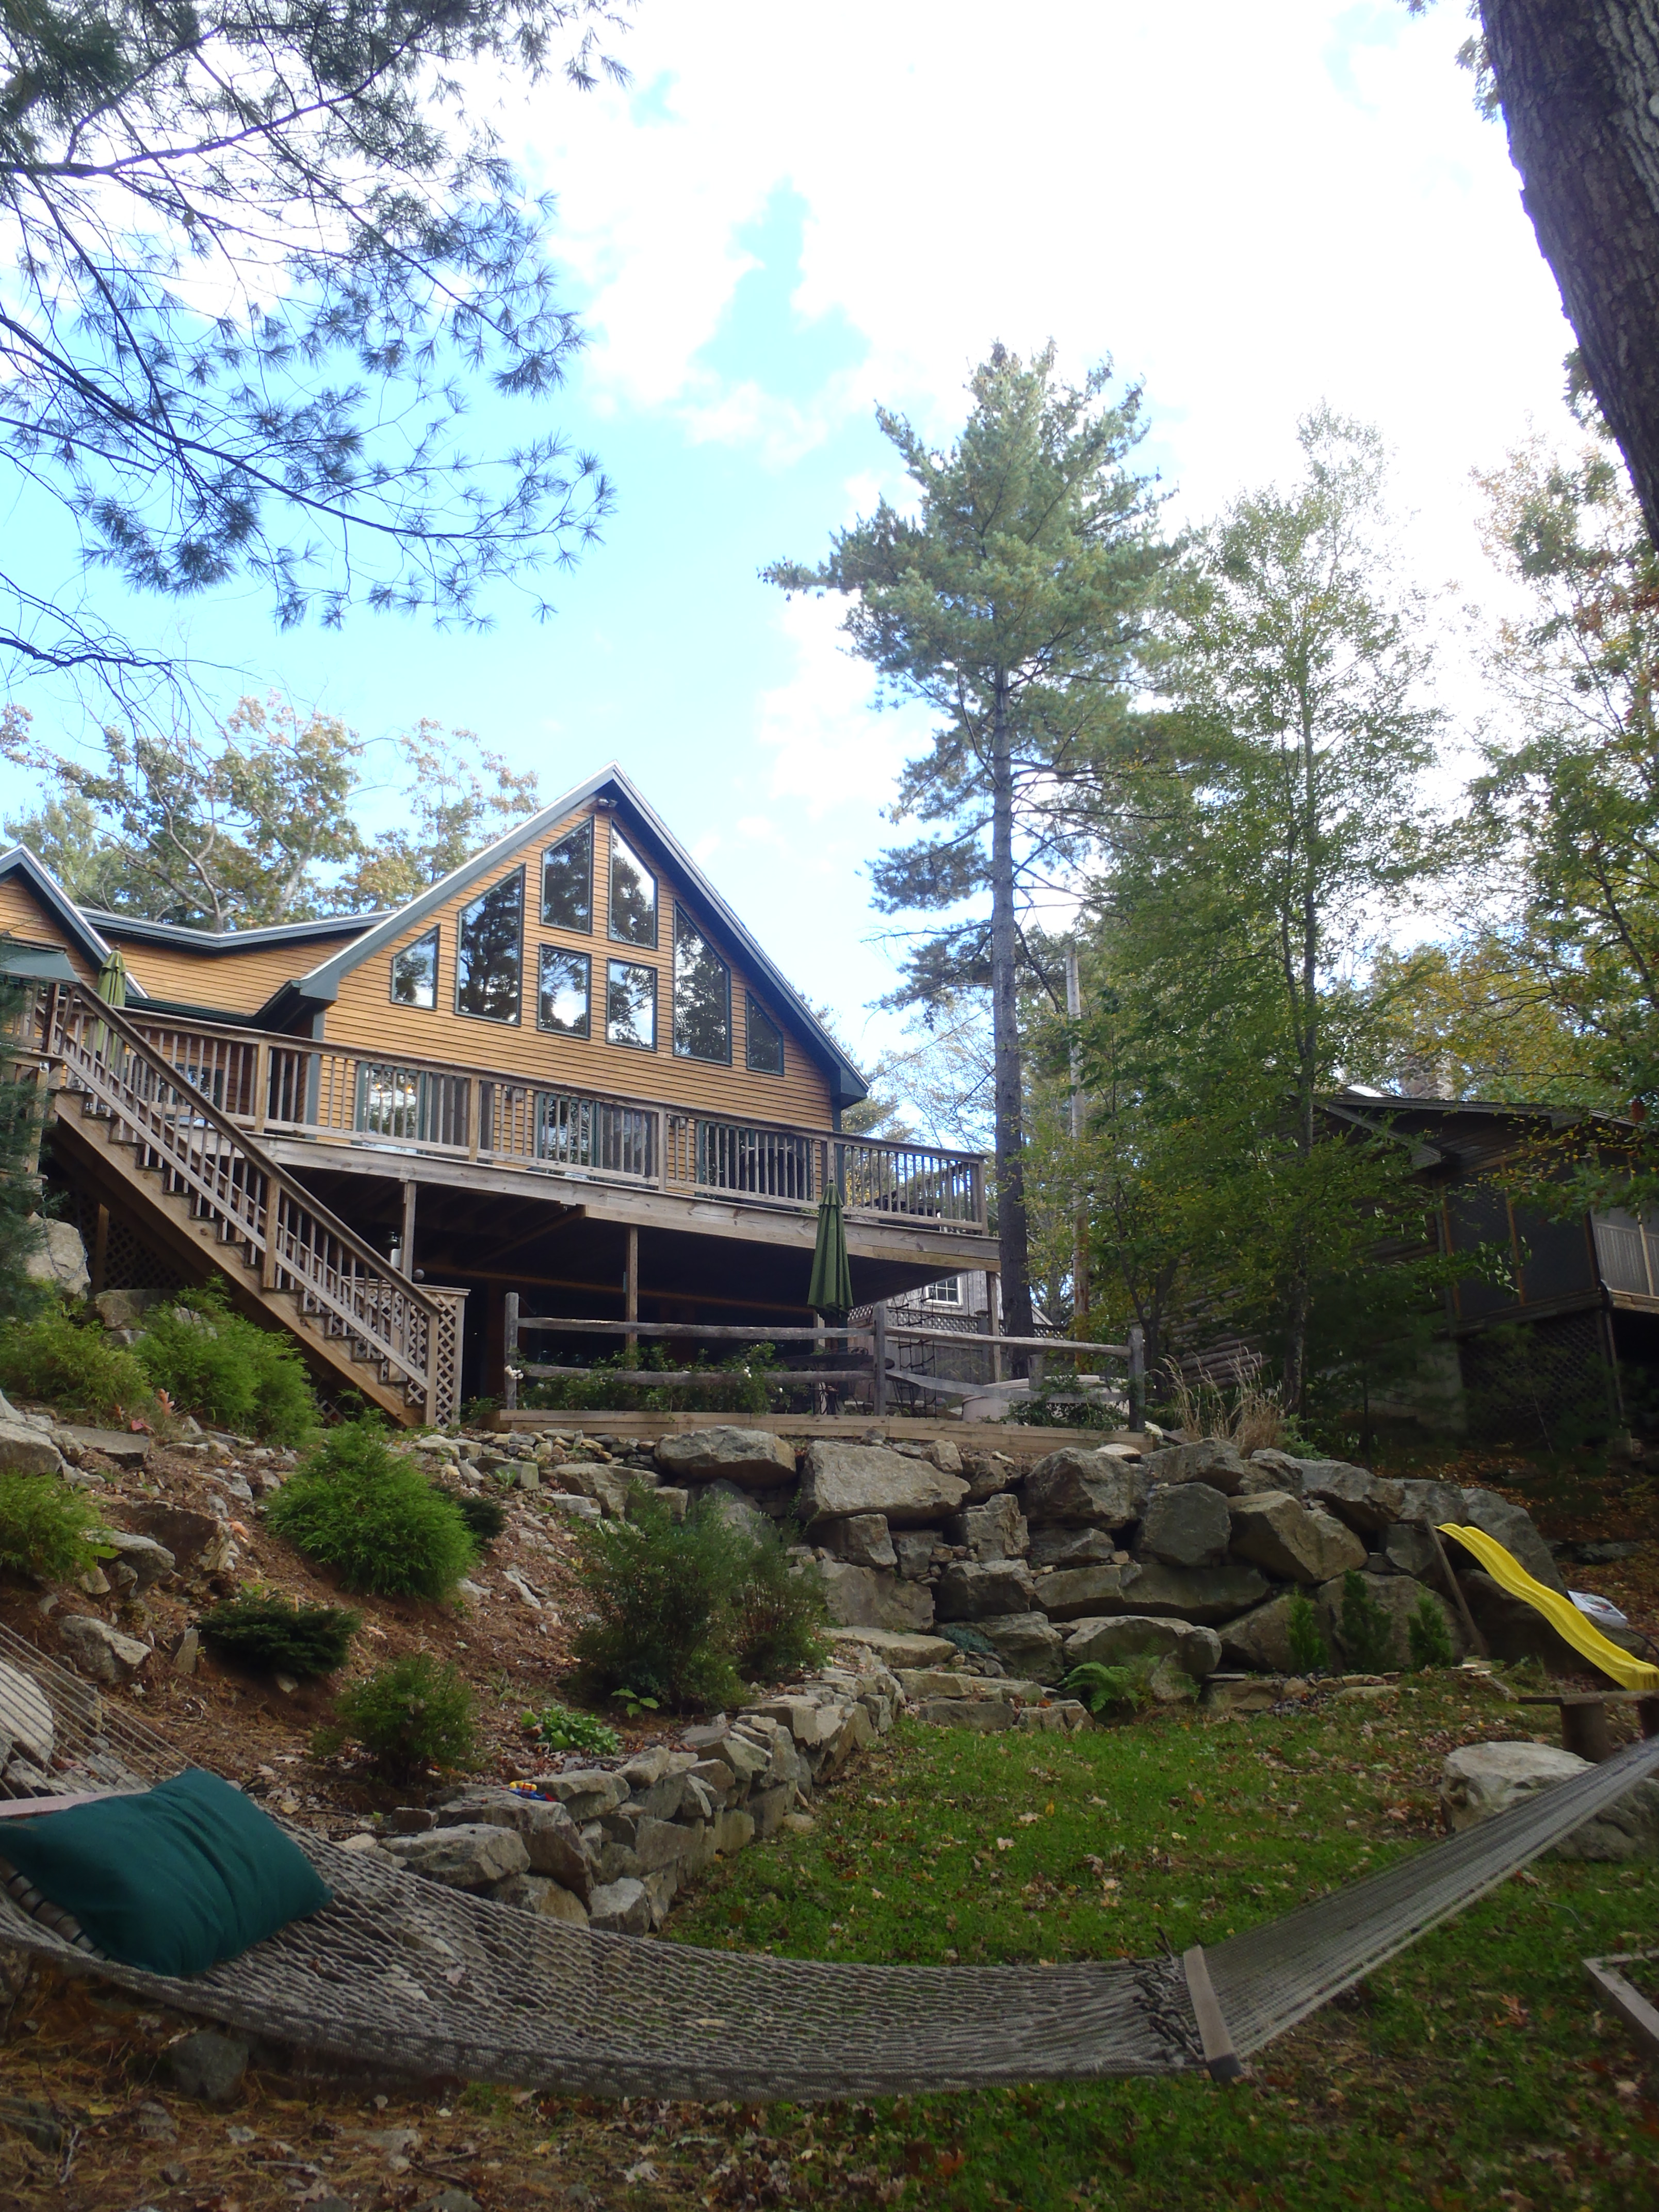 sparta foxfire waterfront homes cottages maine realty log nc for sale